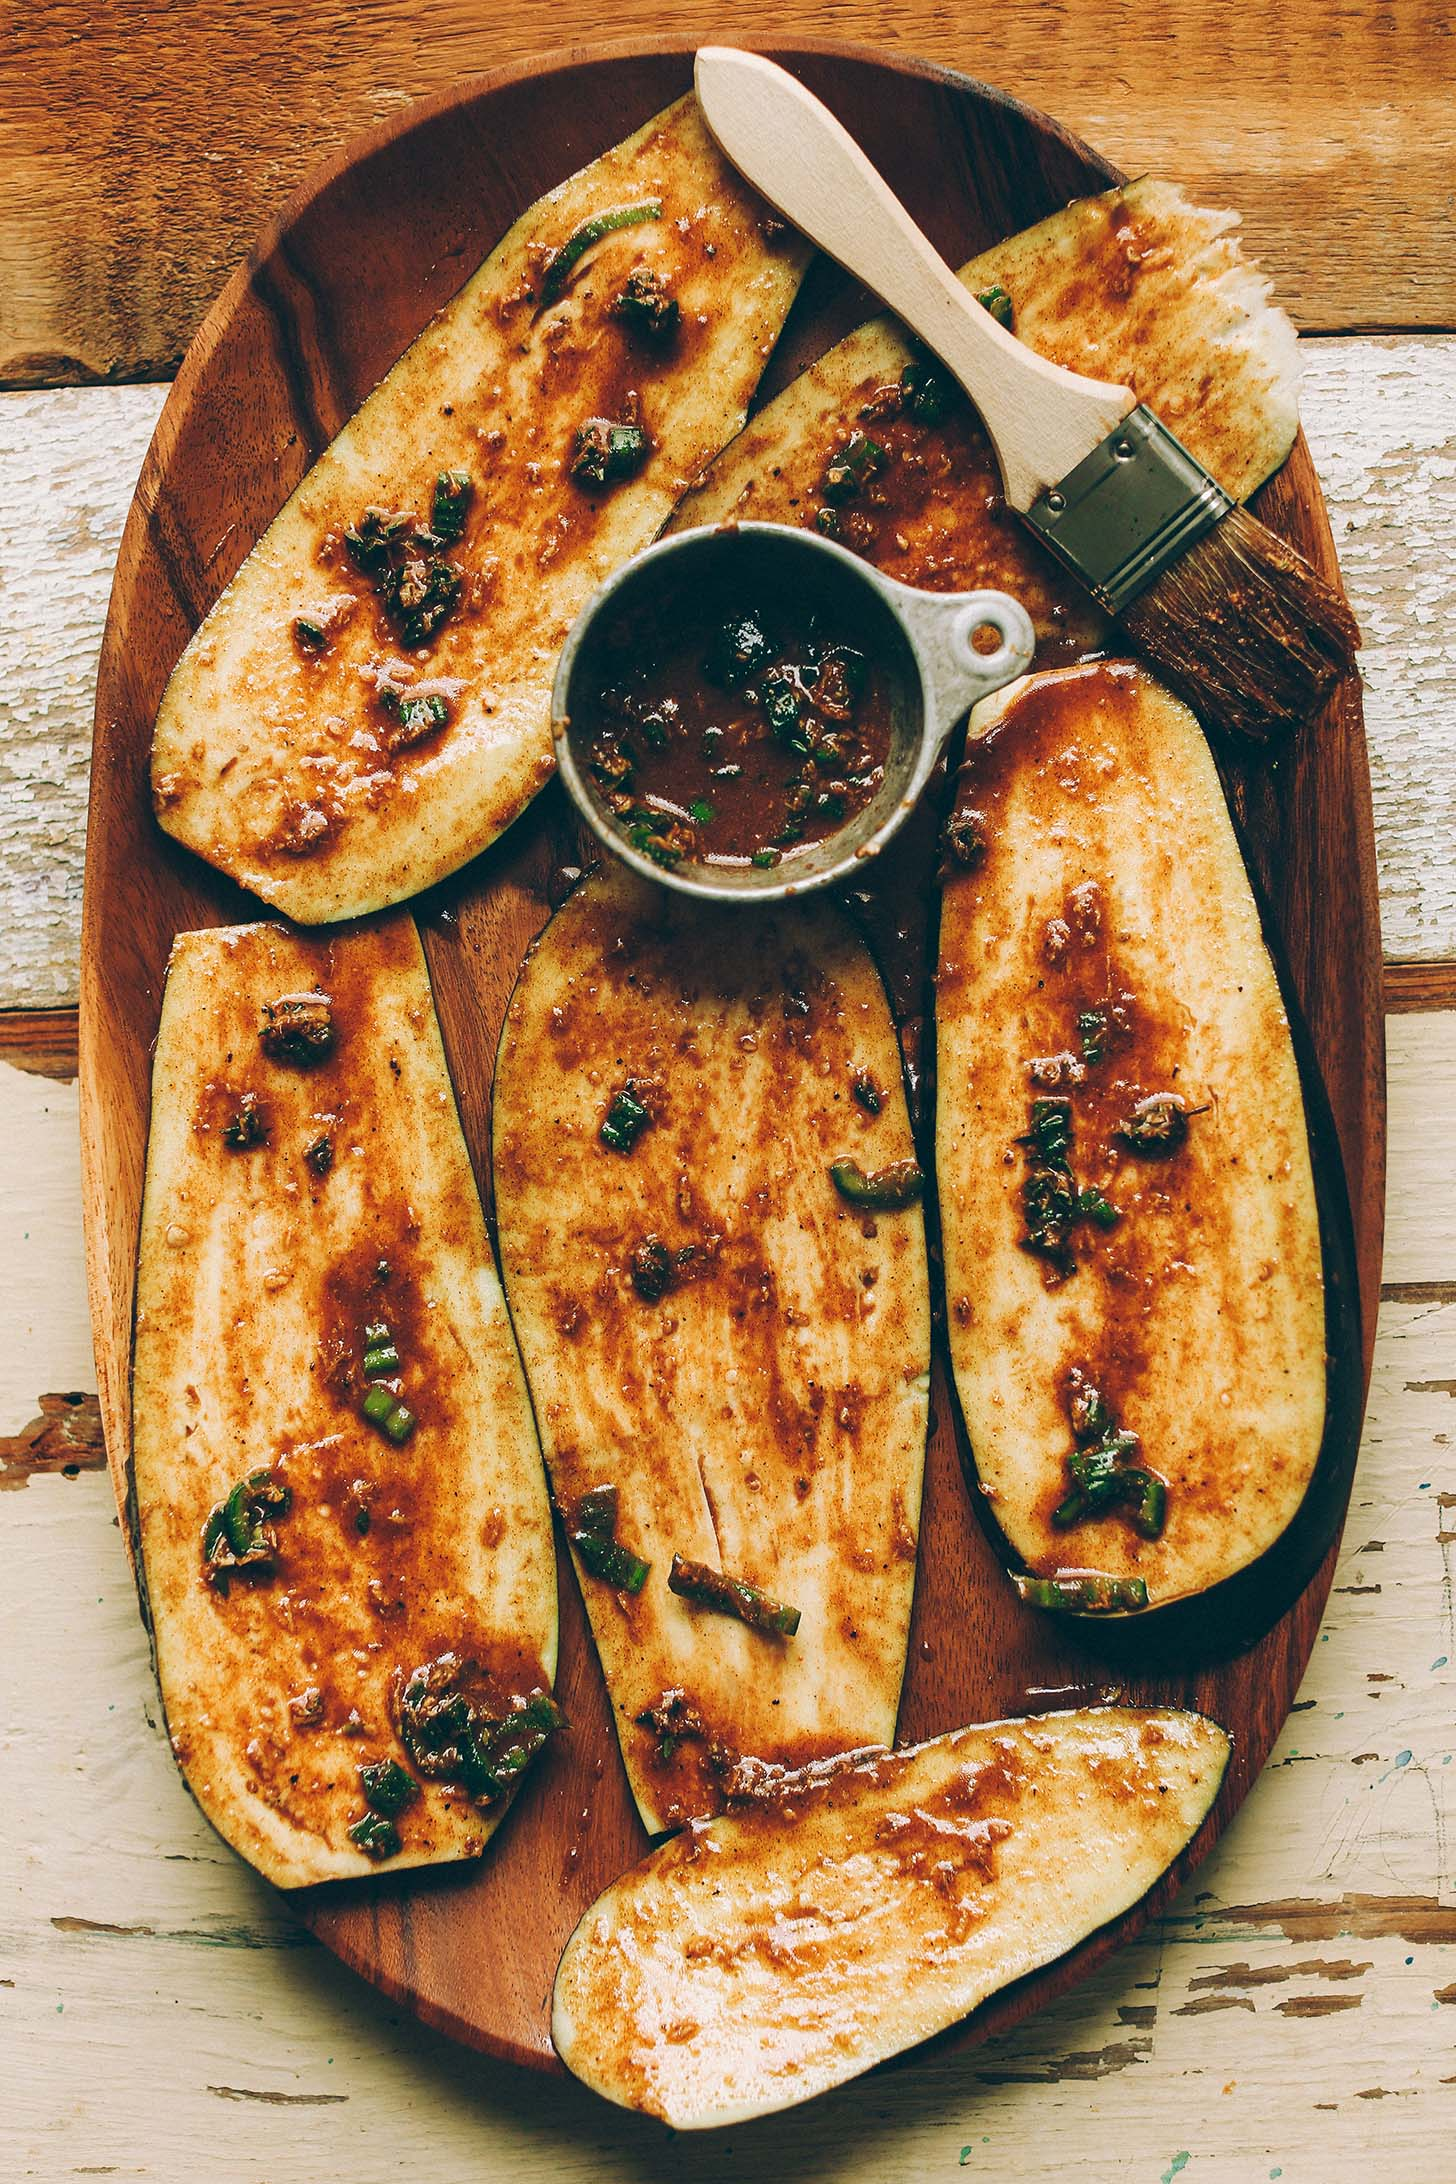 Thinly sliced eggplant slathered with gluten-free homemade Jamaican Jerk dressing